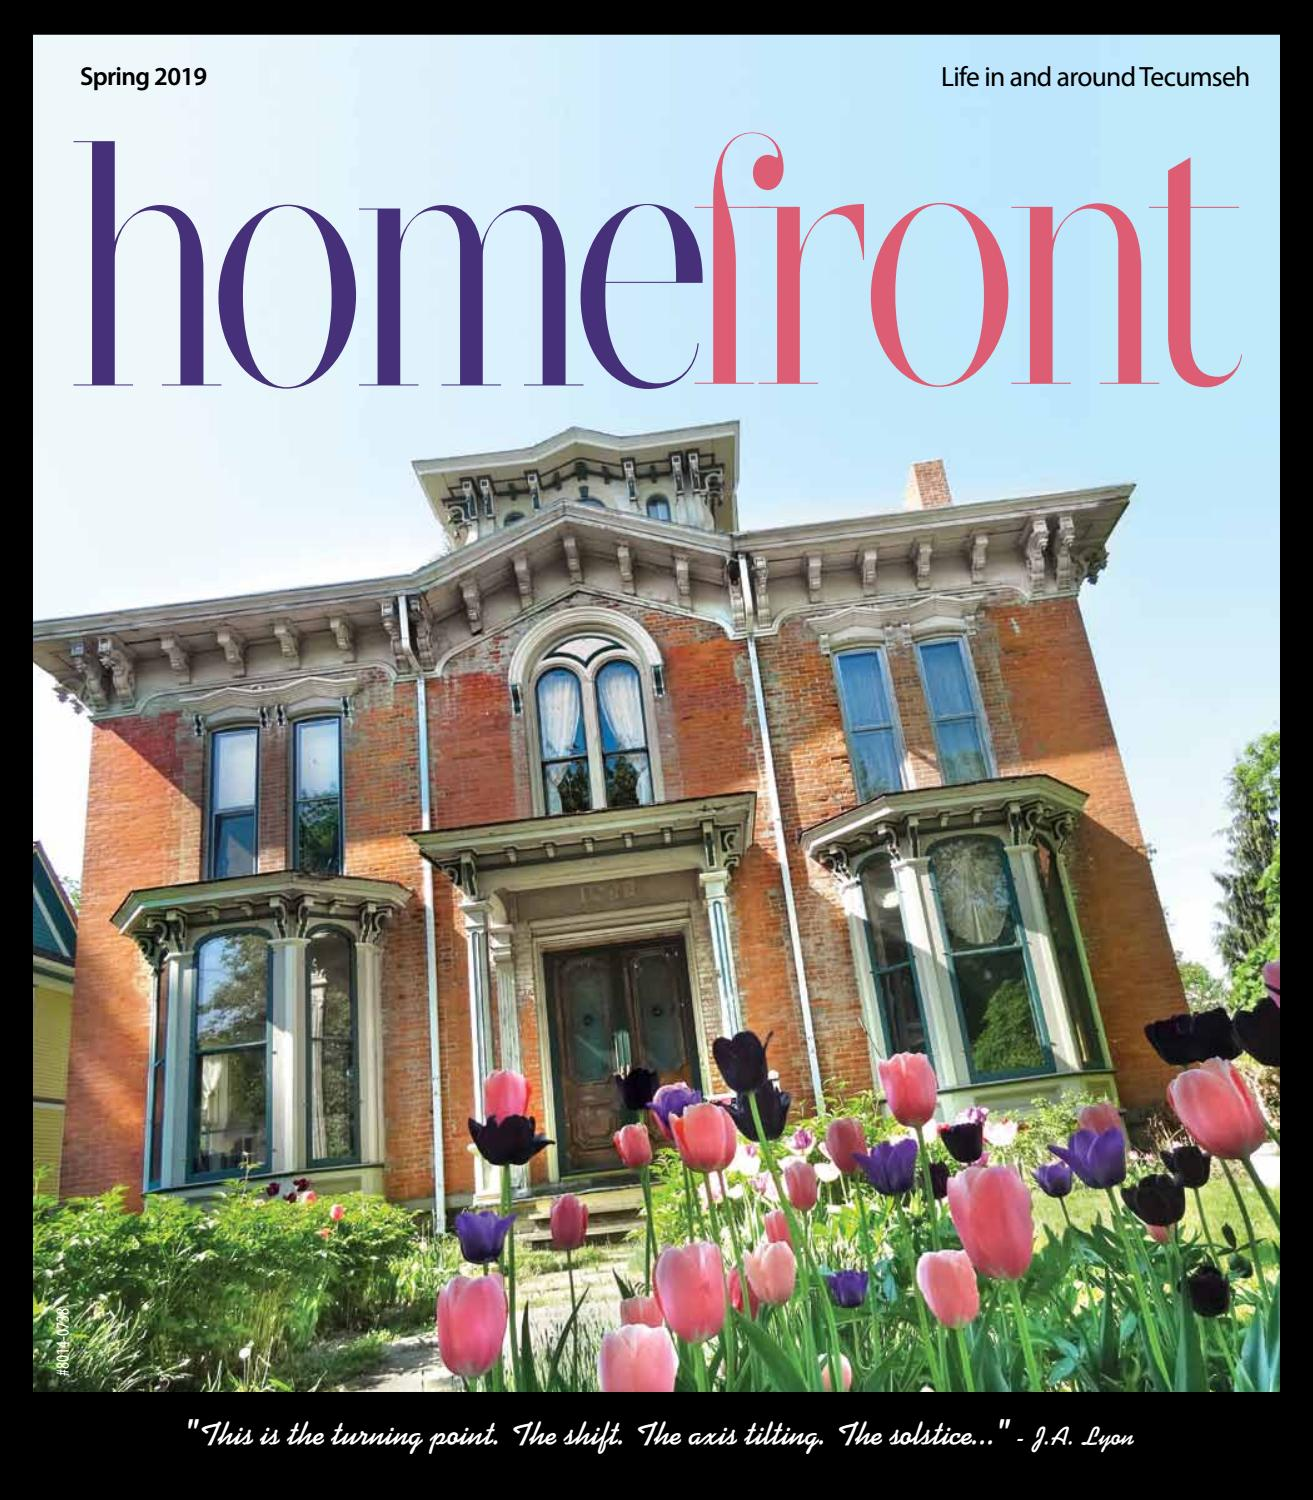 2019 Spring Homefront by Tecumseh Homefront - issuu